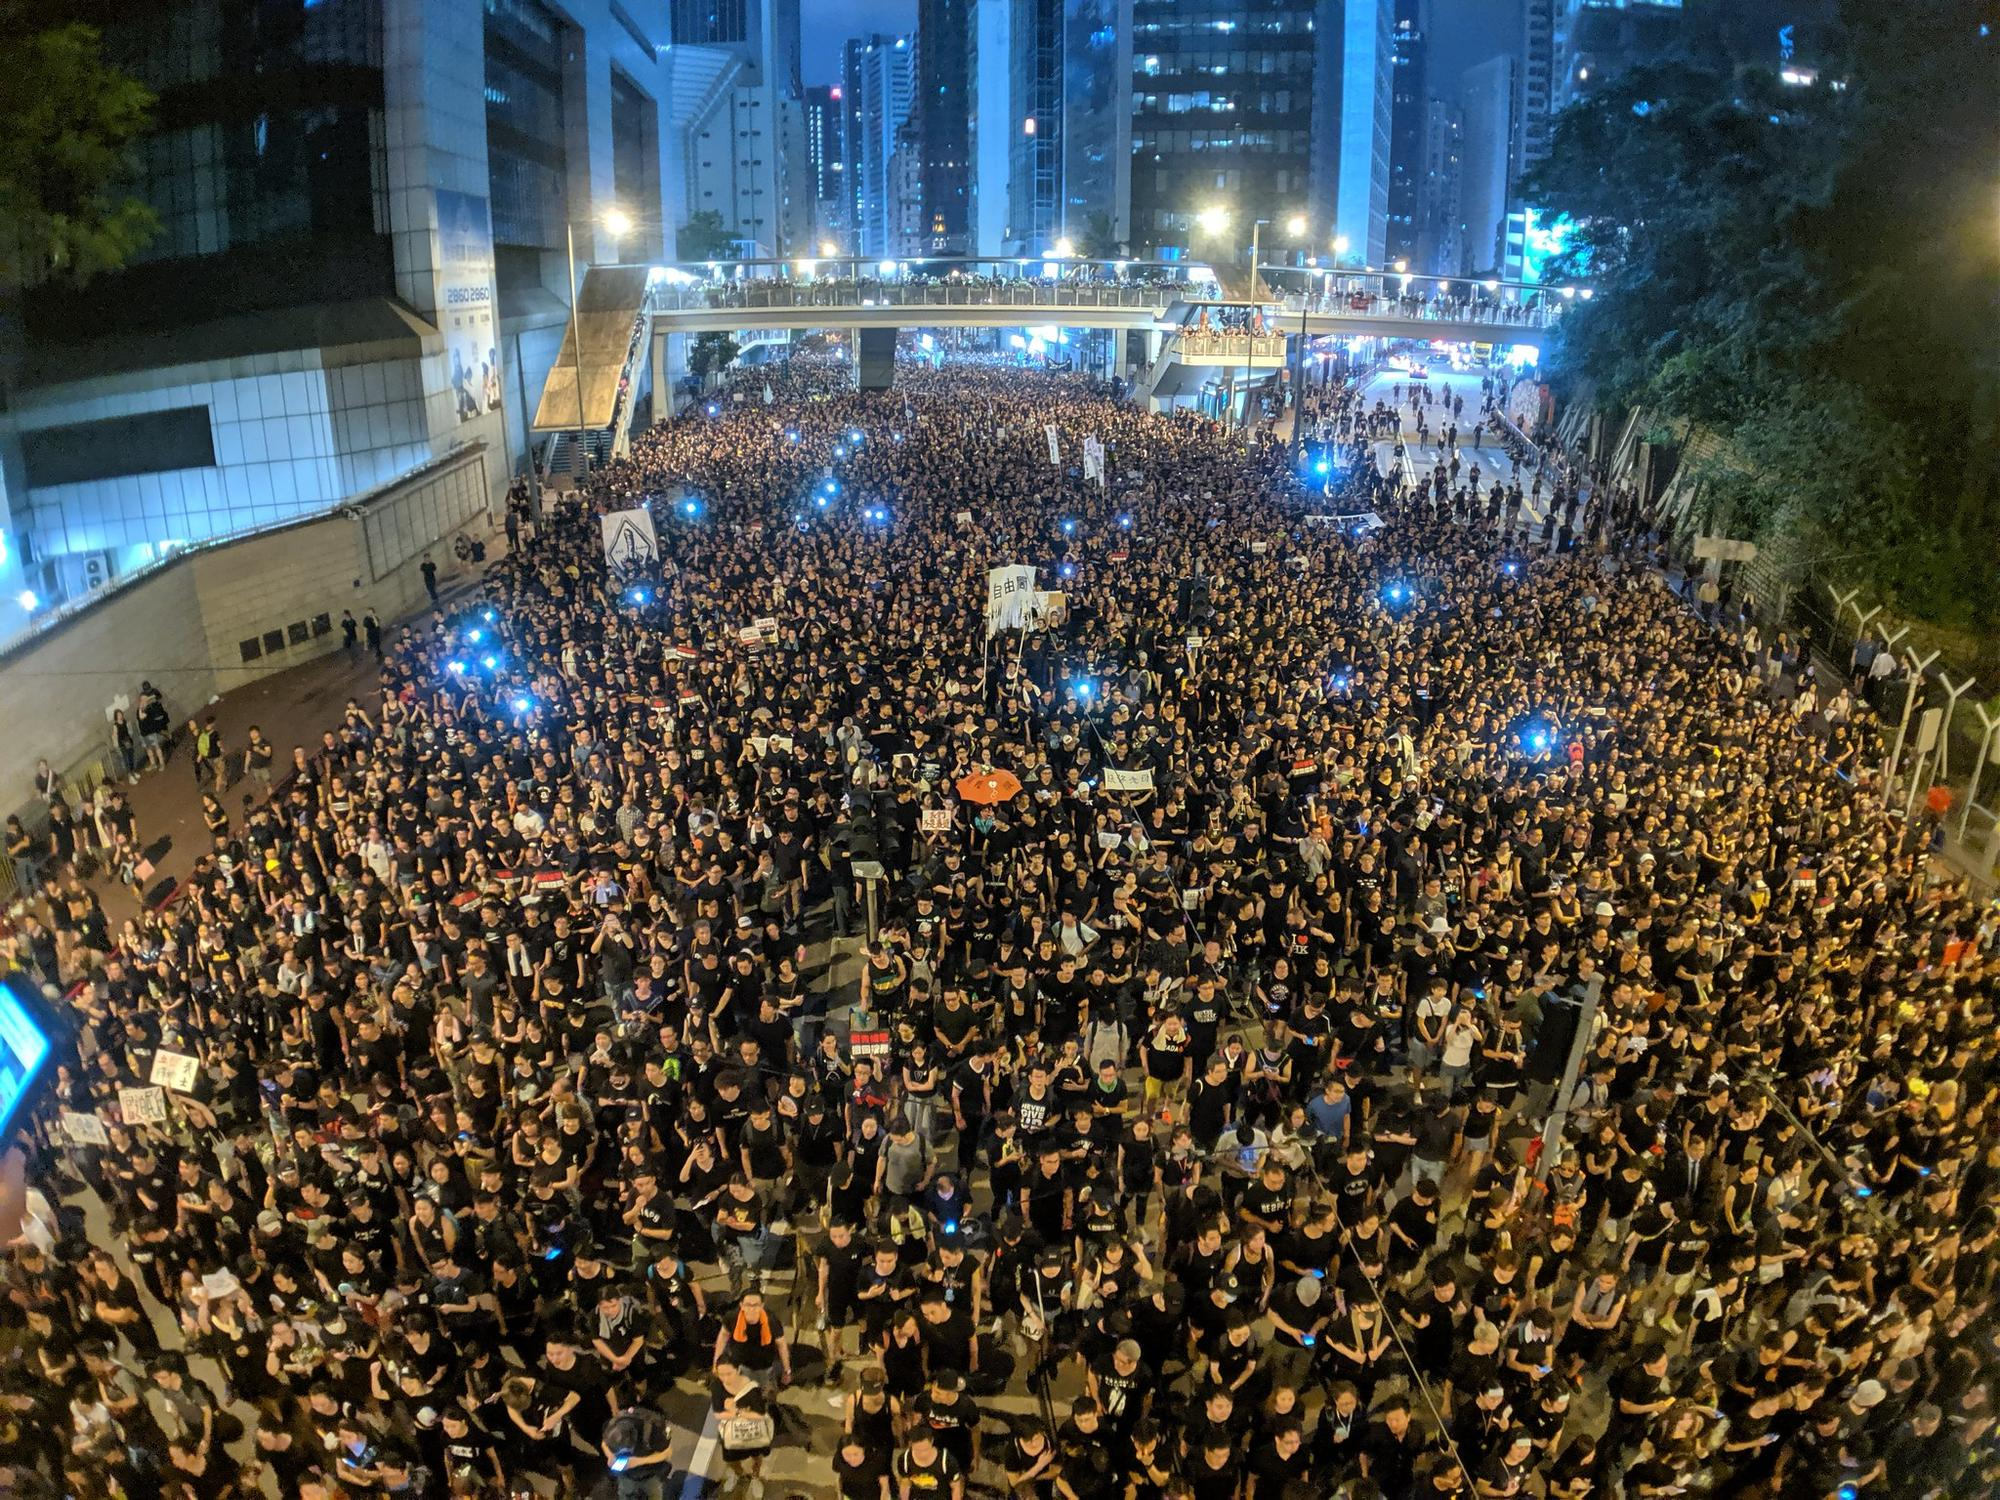 People with signs, some holding up lights, fill the streets of Hong Kong at night to protest